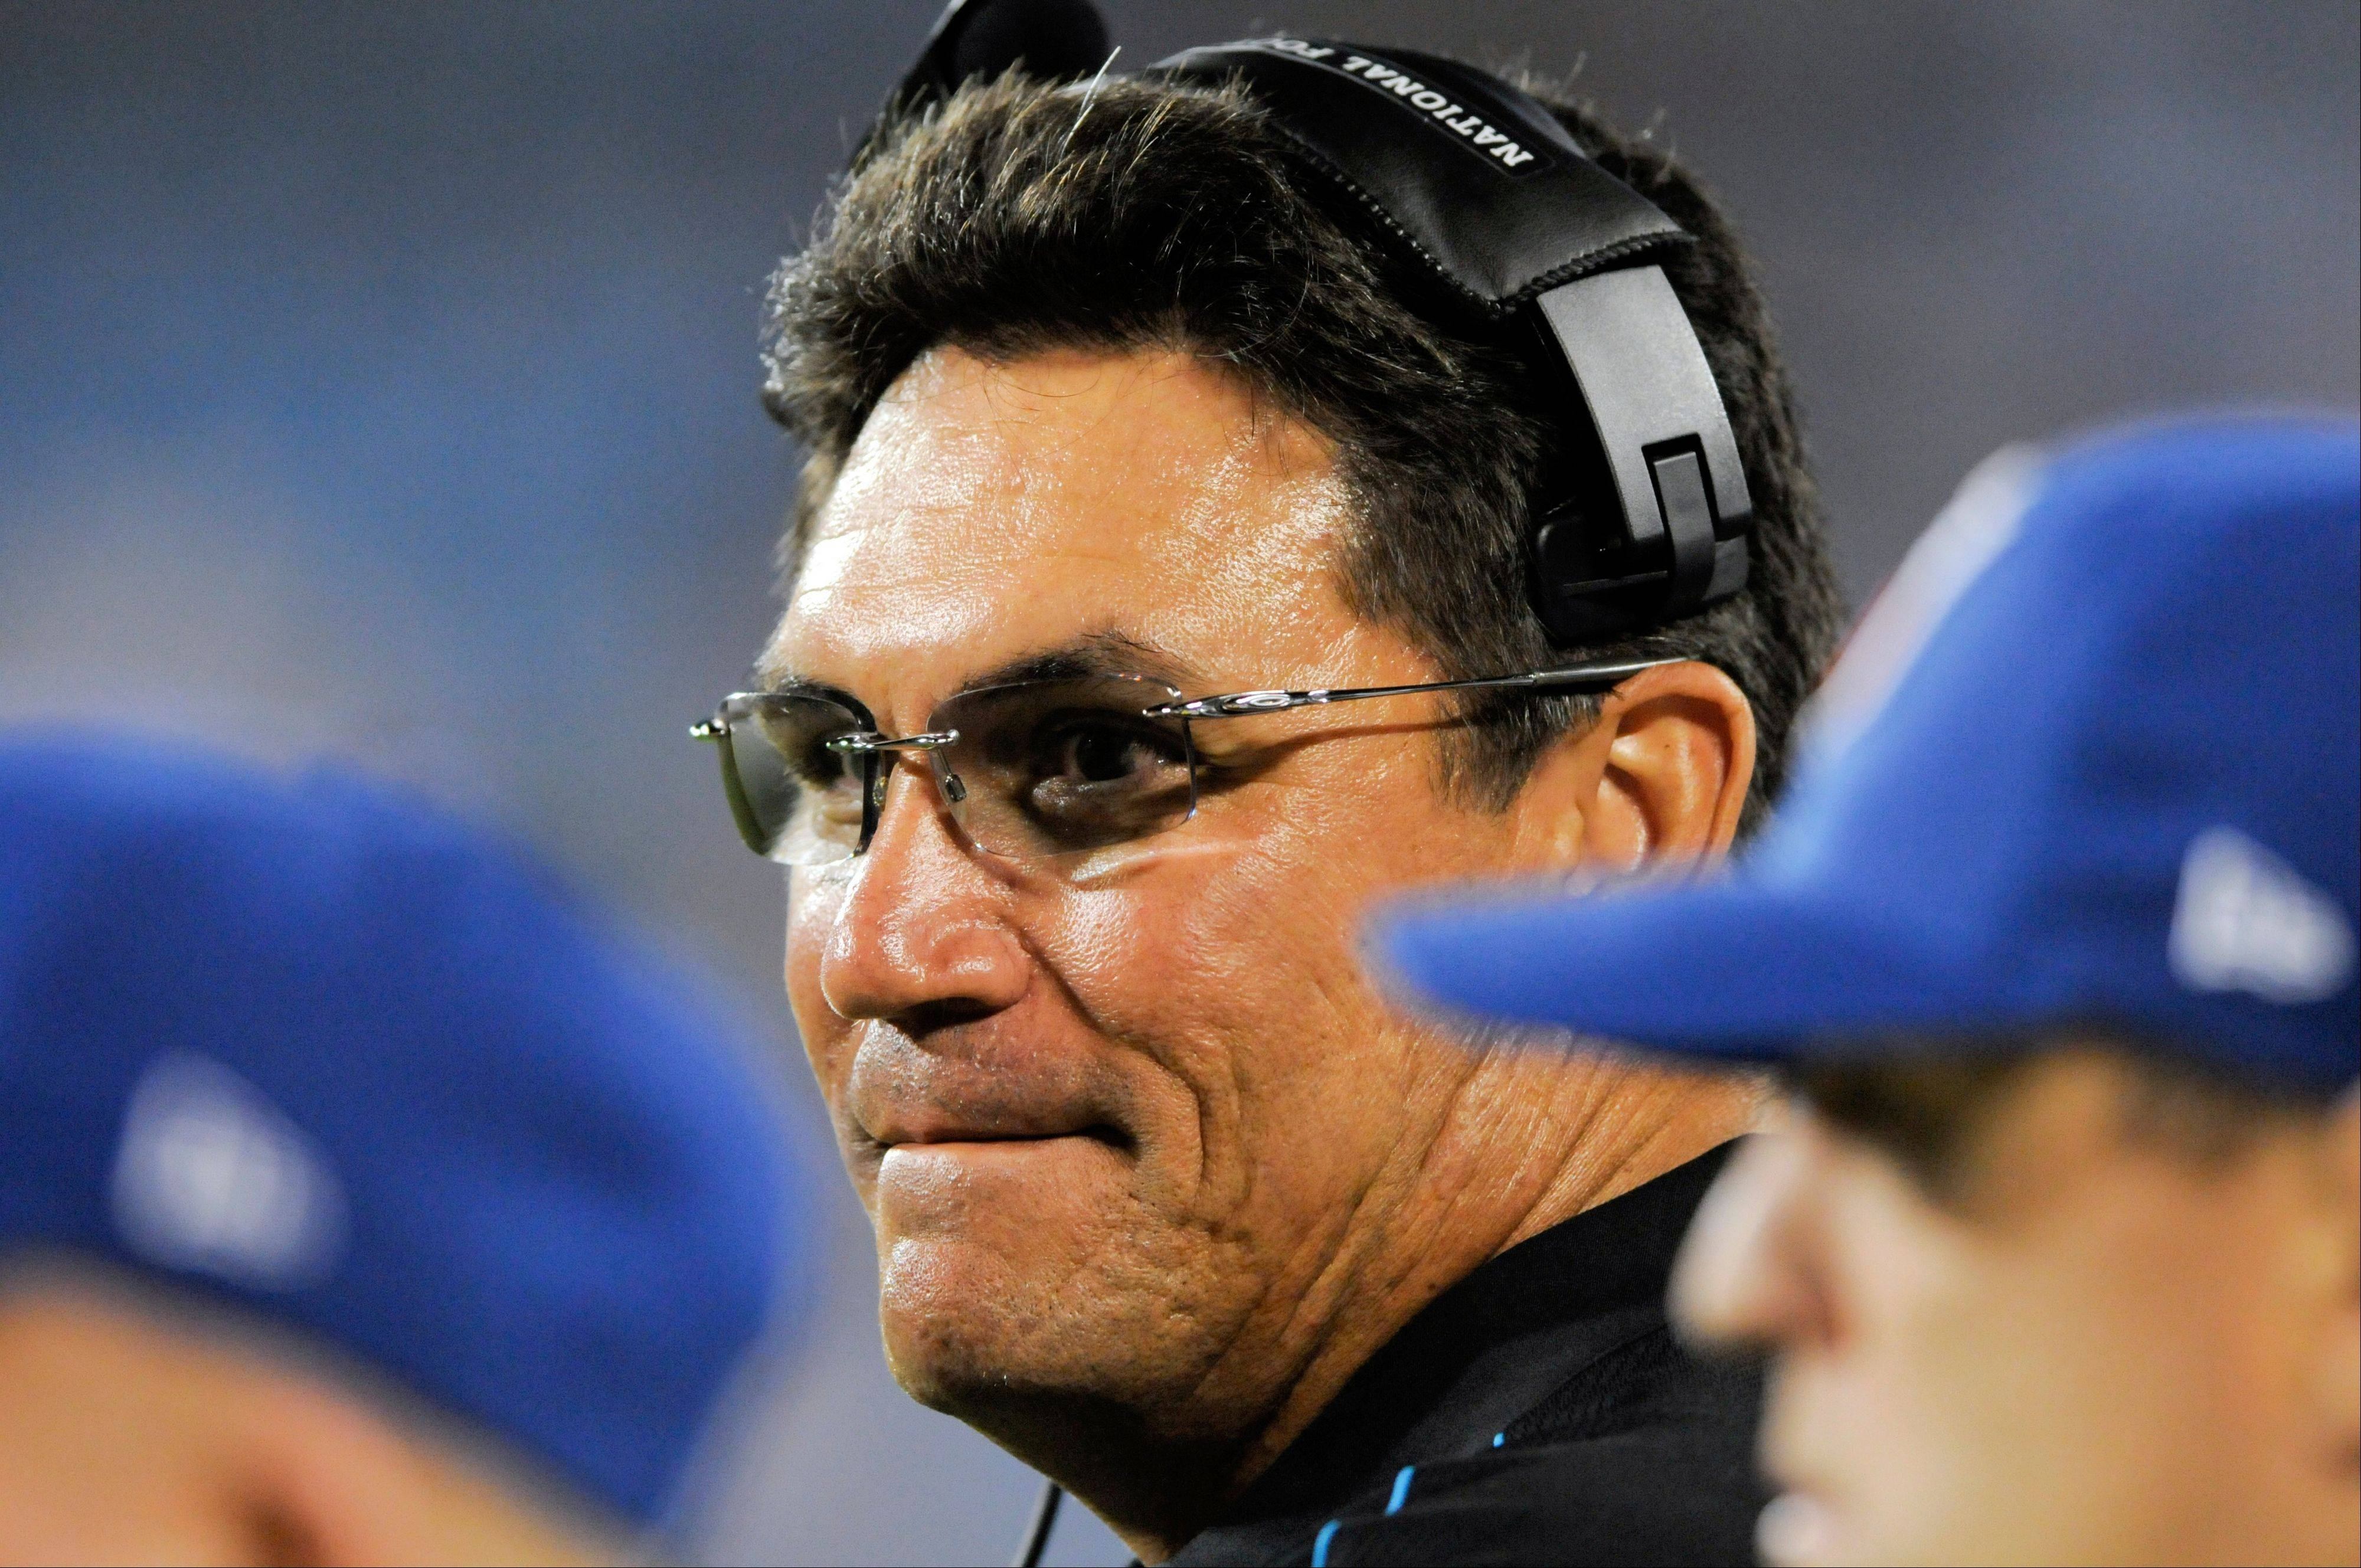 Panthers head coach Ron Rivera, who was defensive coordinator for the Bears in 2006, says this year's Bears defense may be better than the one he directed.